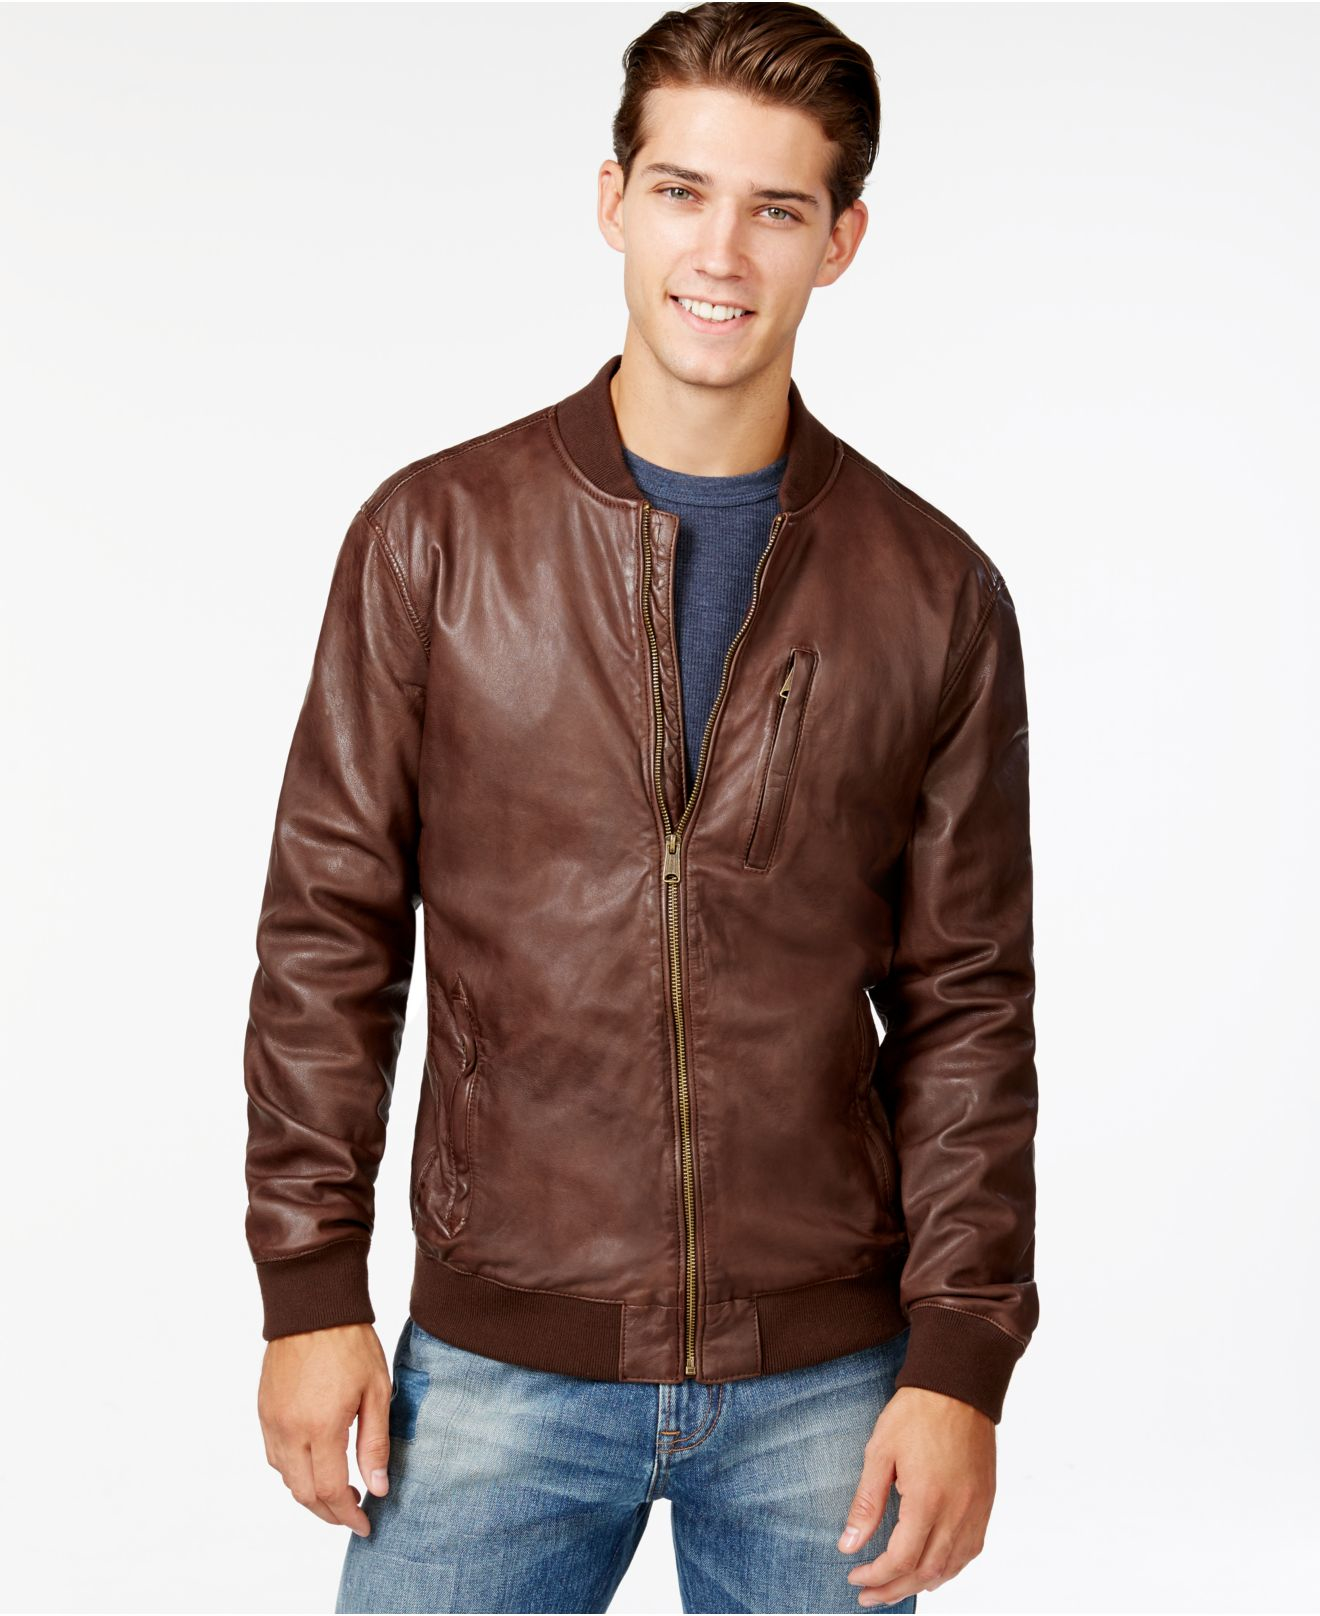 Leather Bomber Jacket Brown - Coat Nj